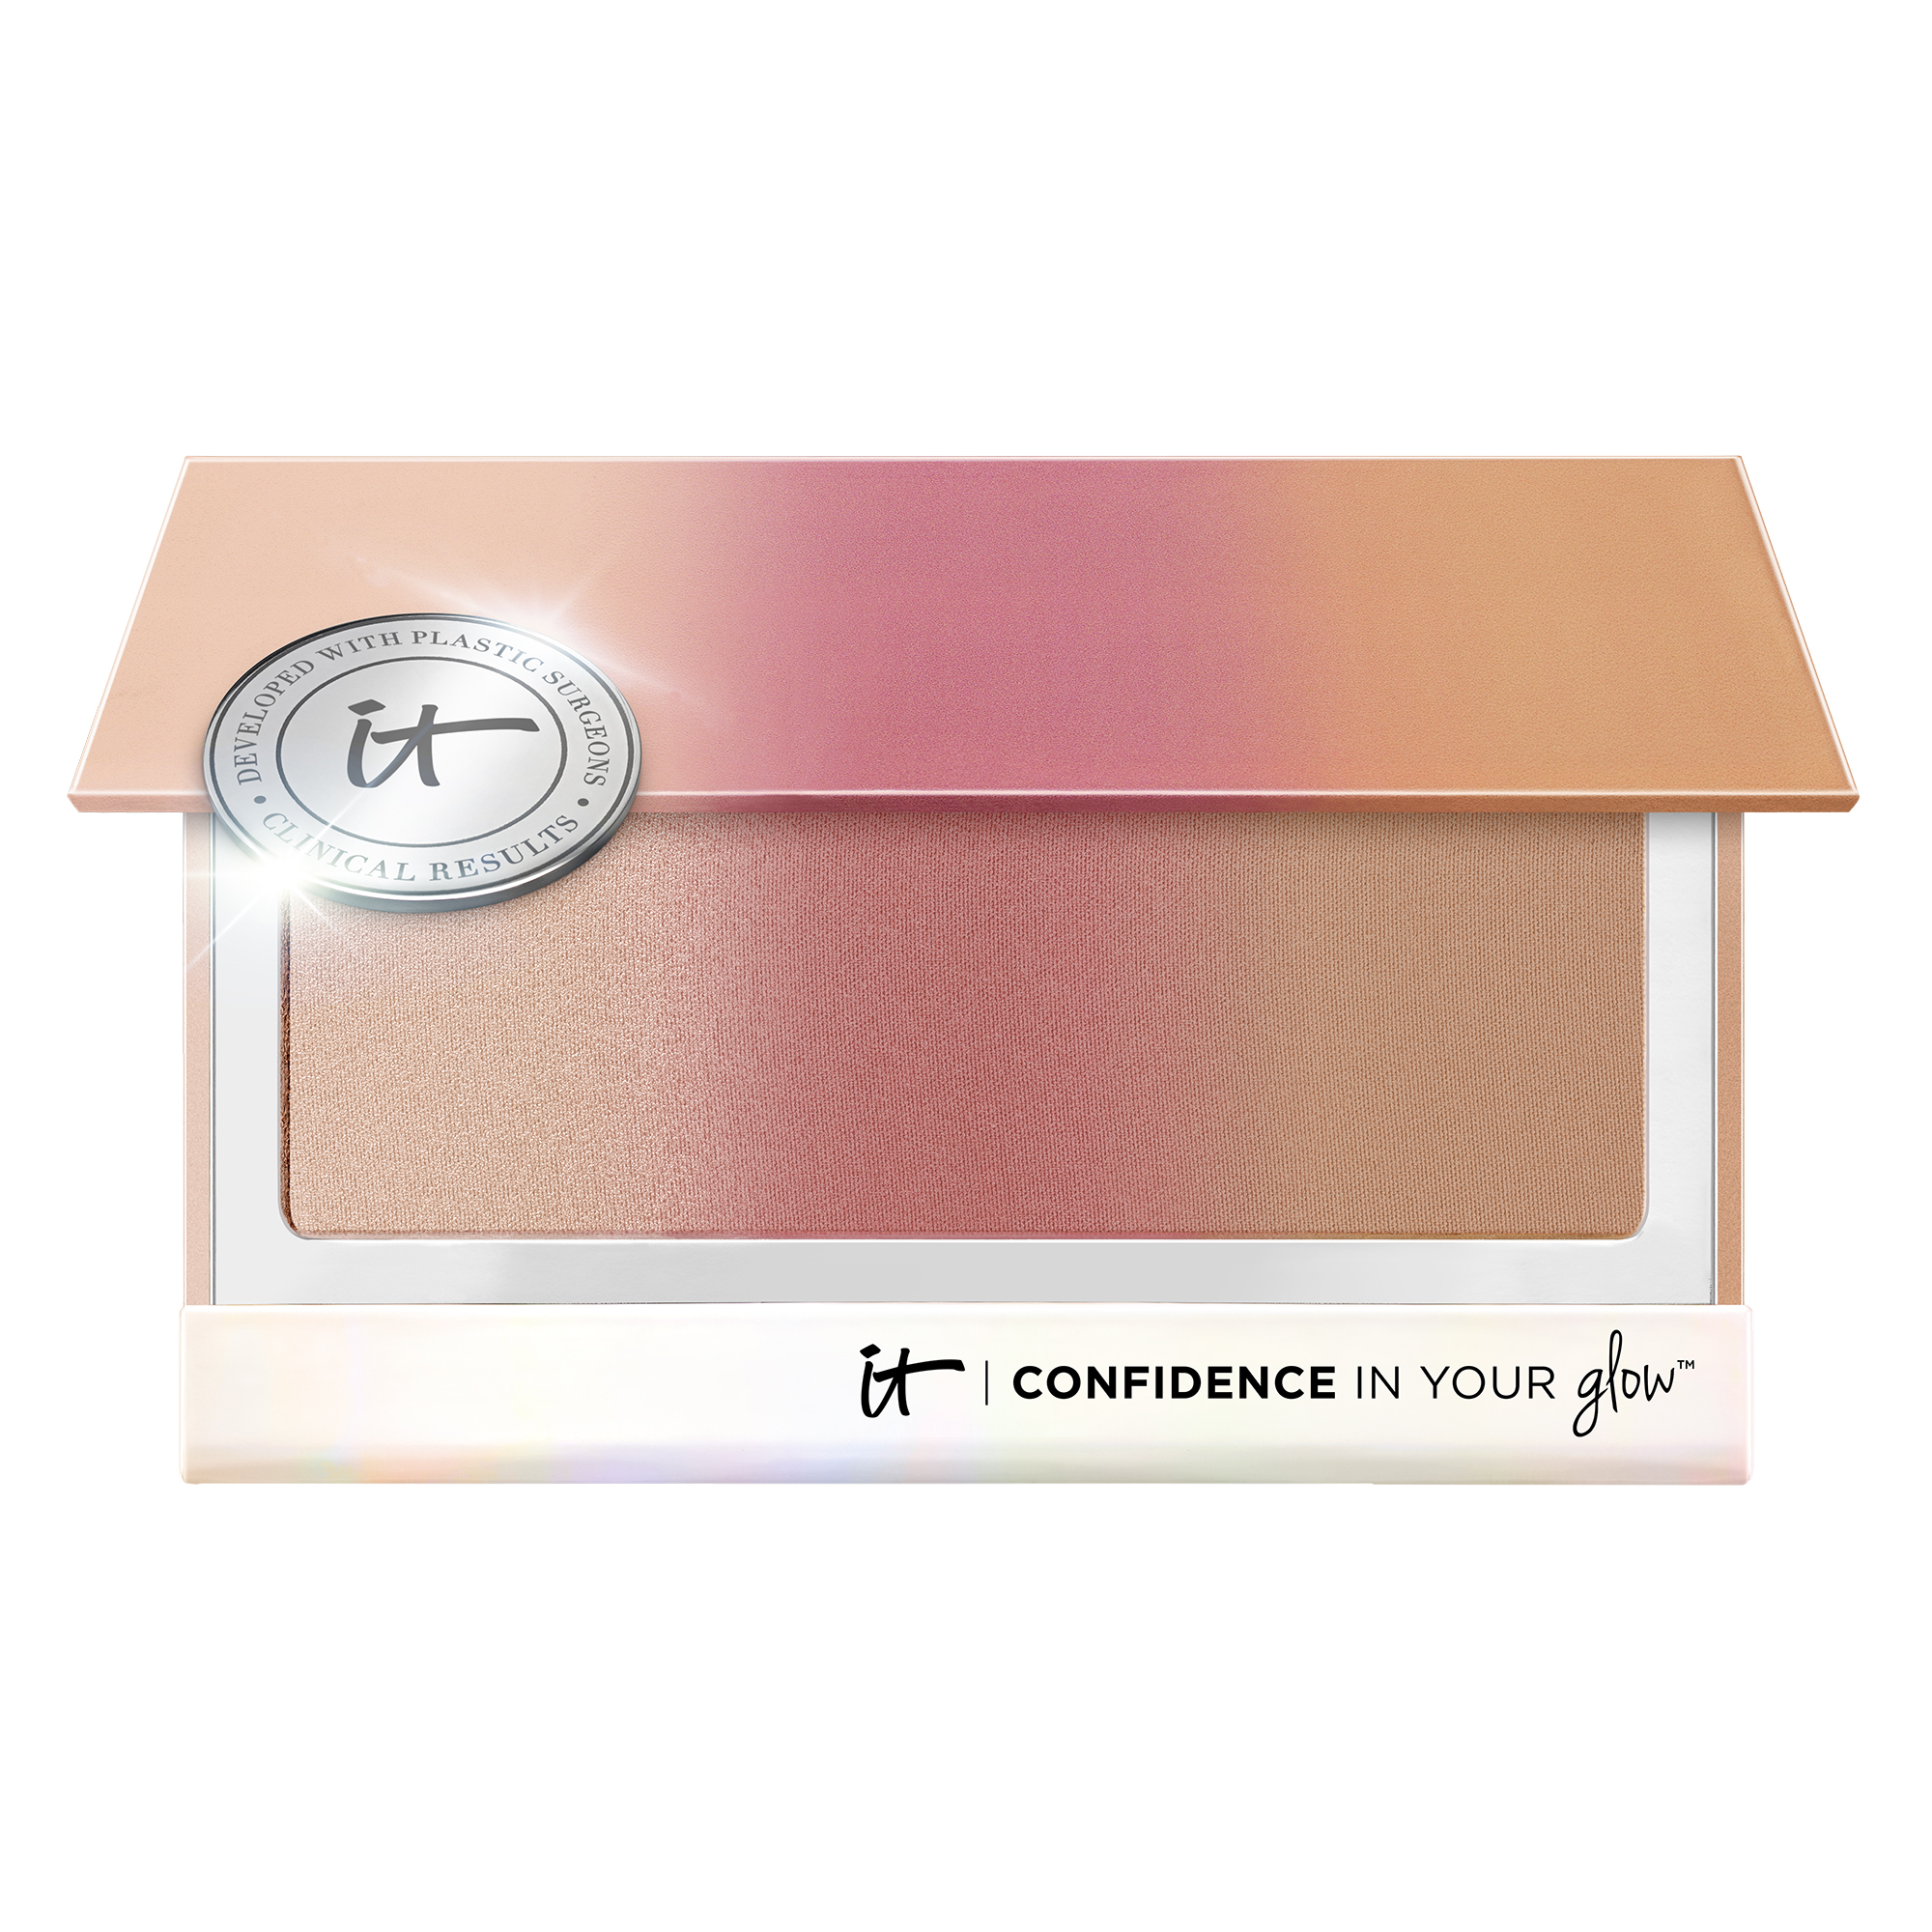 Confidence in Your Glow™ Blush